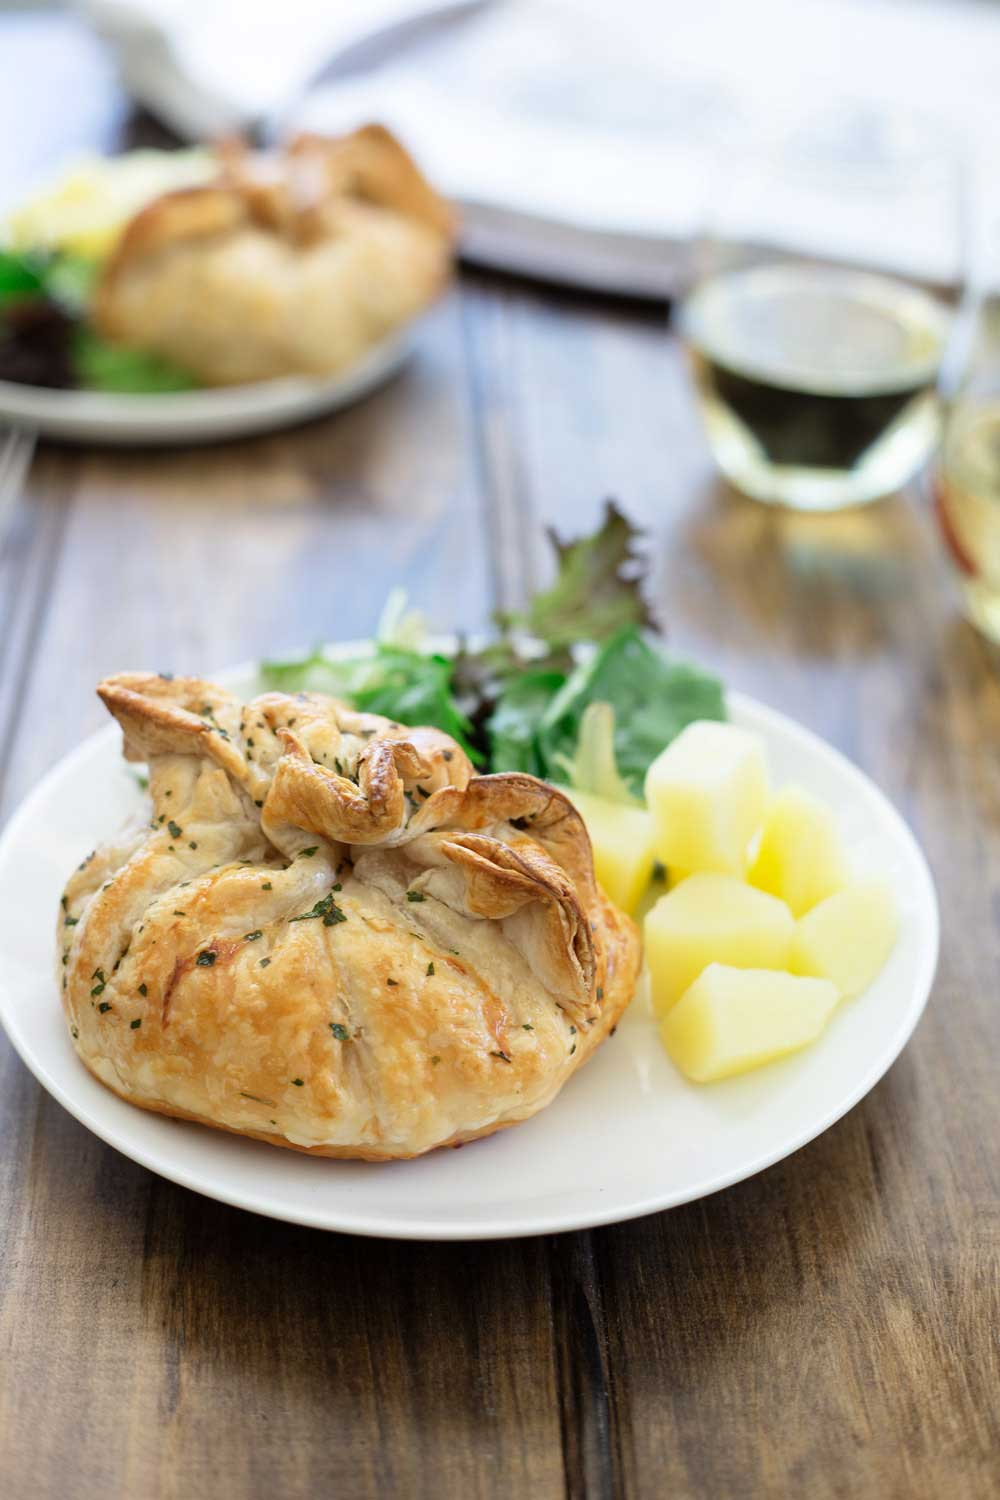 These Garlic Chicken Parcels are super easy and super impressive. Individual parcels, filled with juicy chicken and oozing with garlic butter. They are perfect for entertaining as they can be prepared ahead of time and then just popped in the oven to cook when you sit down for appetisers.